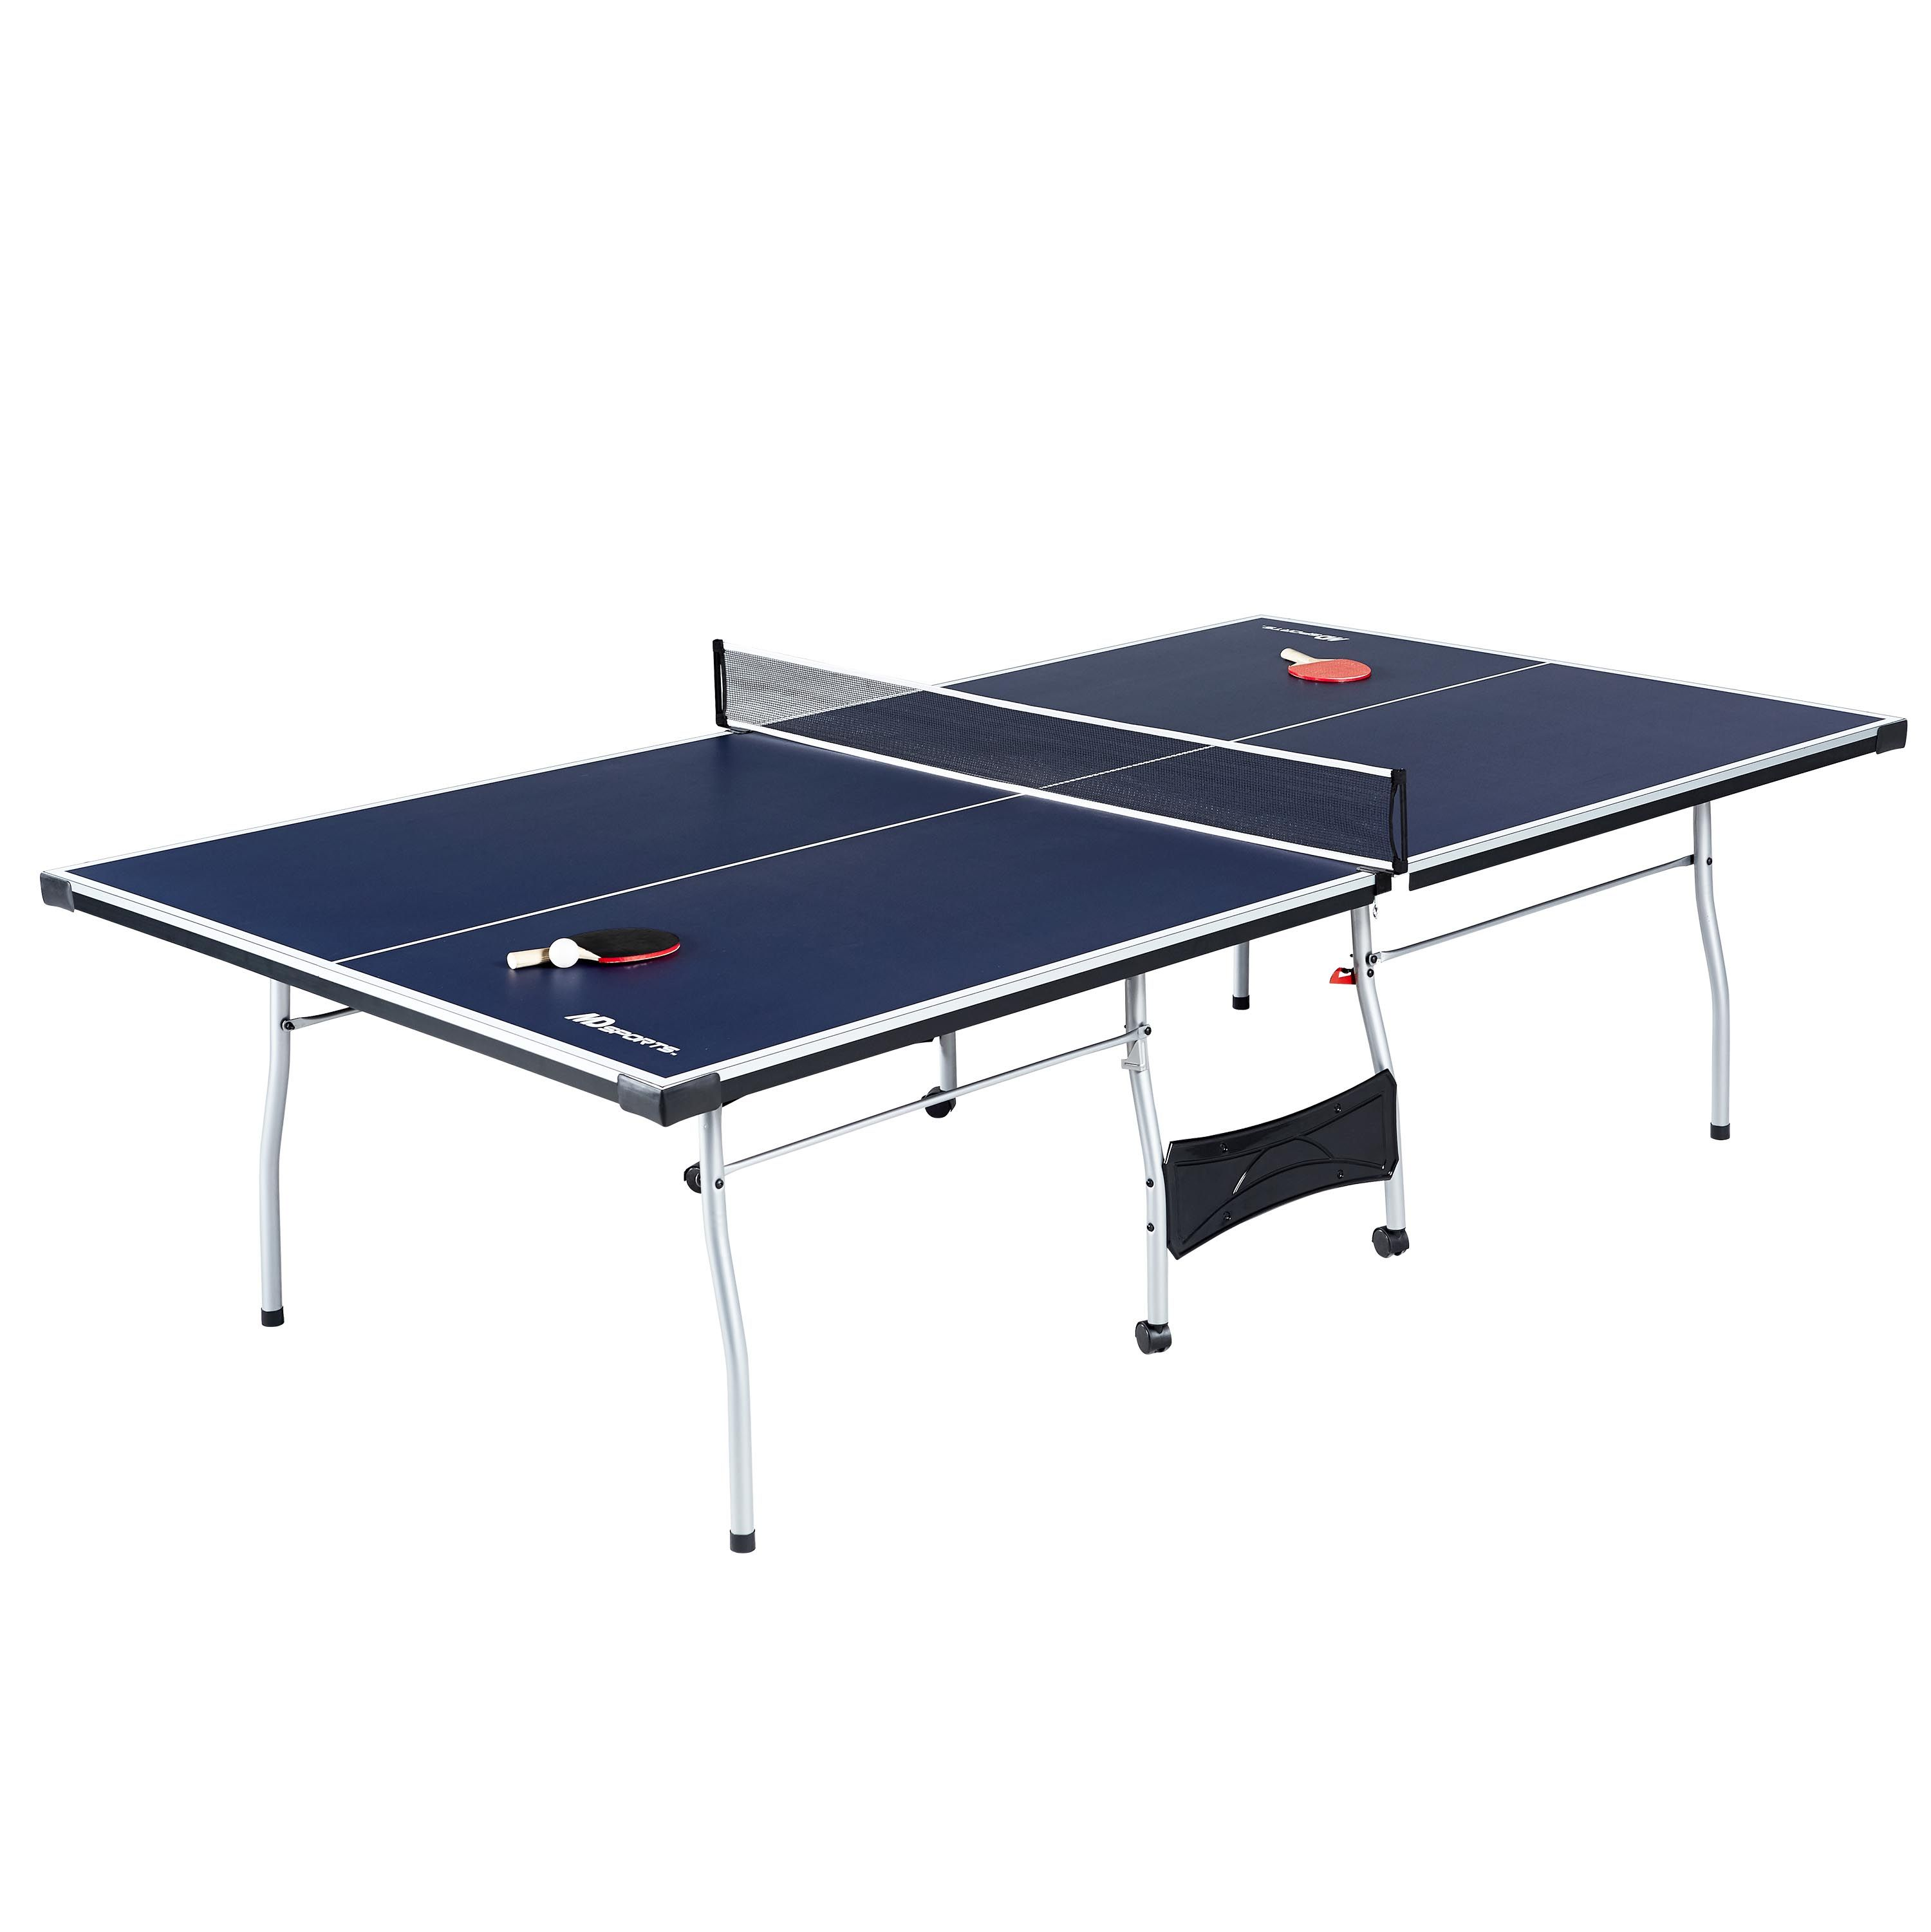 Md Sports Official Size 15mm 4 Piece Indoor Table Tennis Tennis Accessories Included Blue White Walmart Com Table Tennis Set Table Tennis Ping Pong